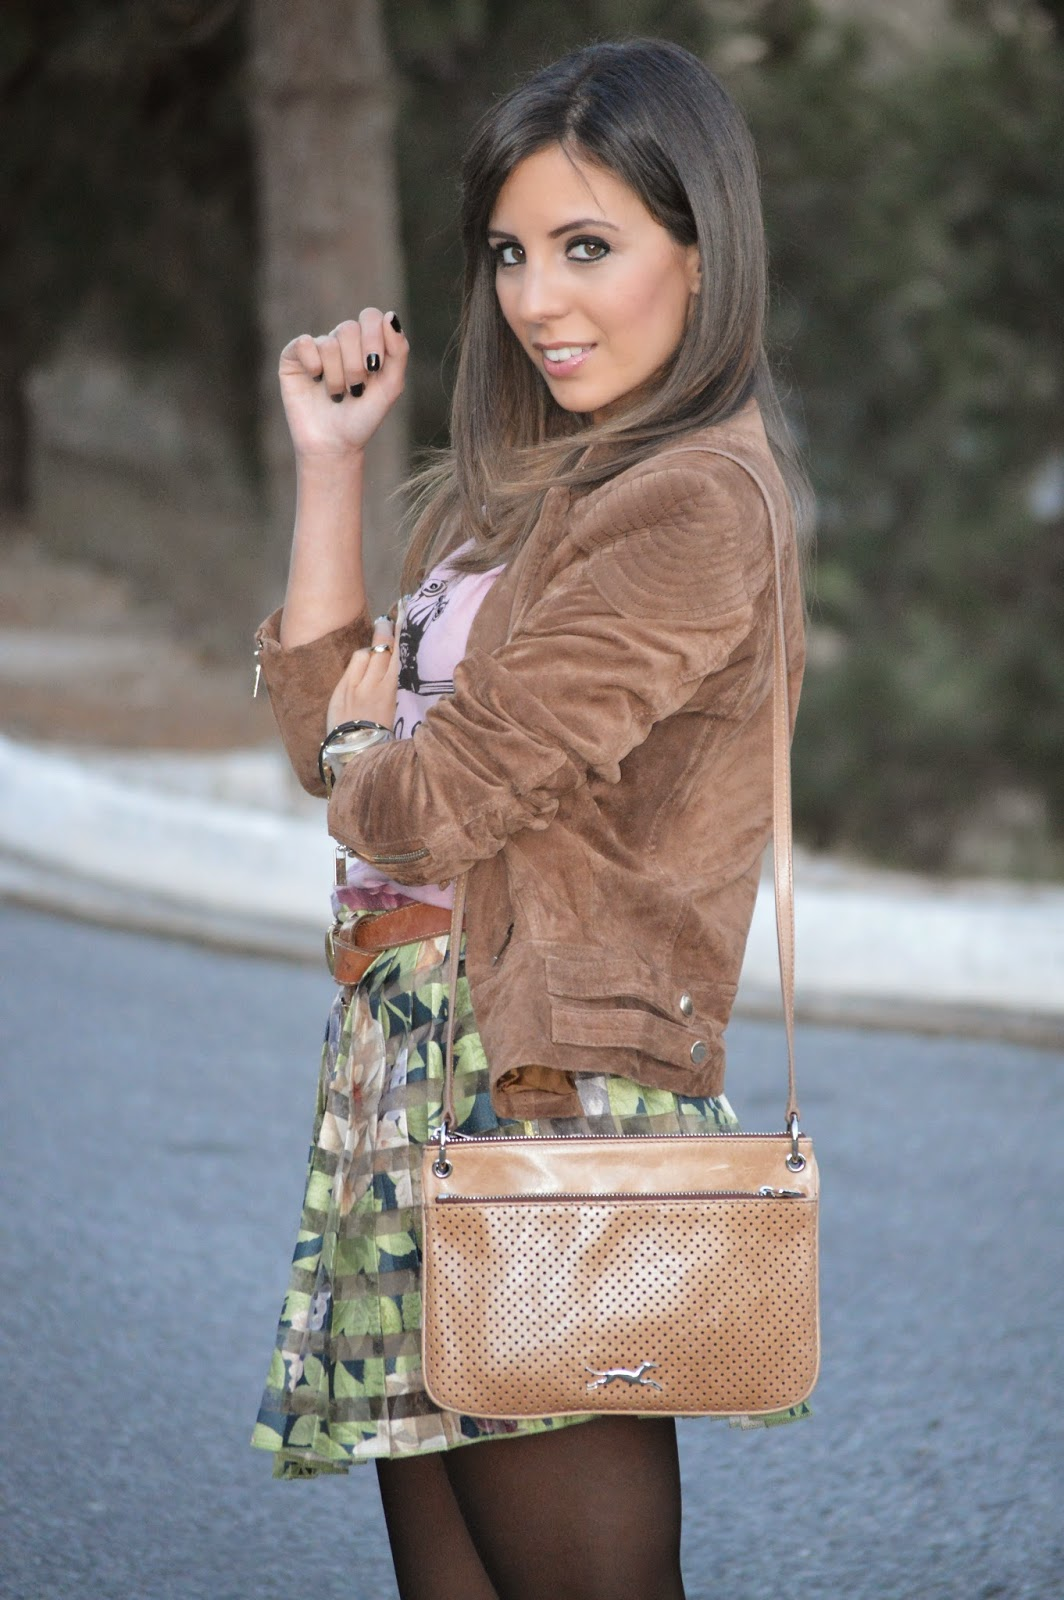 street style cristina style blogger malagueña fashion blogger mañaguena zara mango dolores promesas moda mood outfit look chic casual  lovely blog gorgeous inspirations